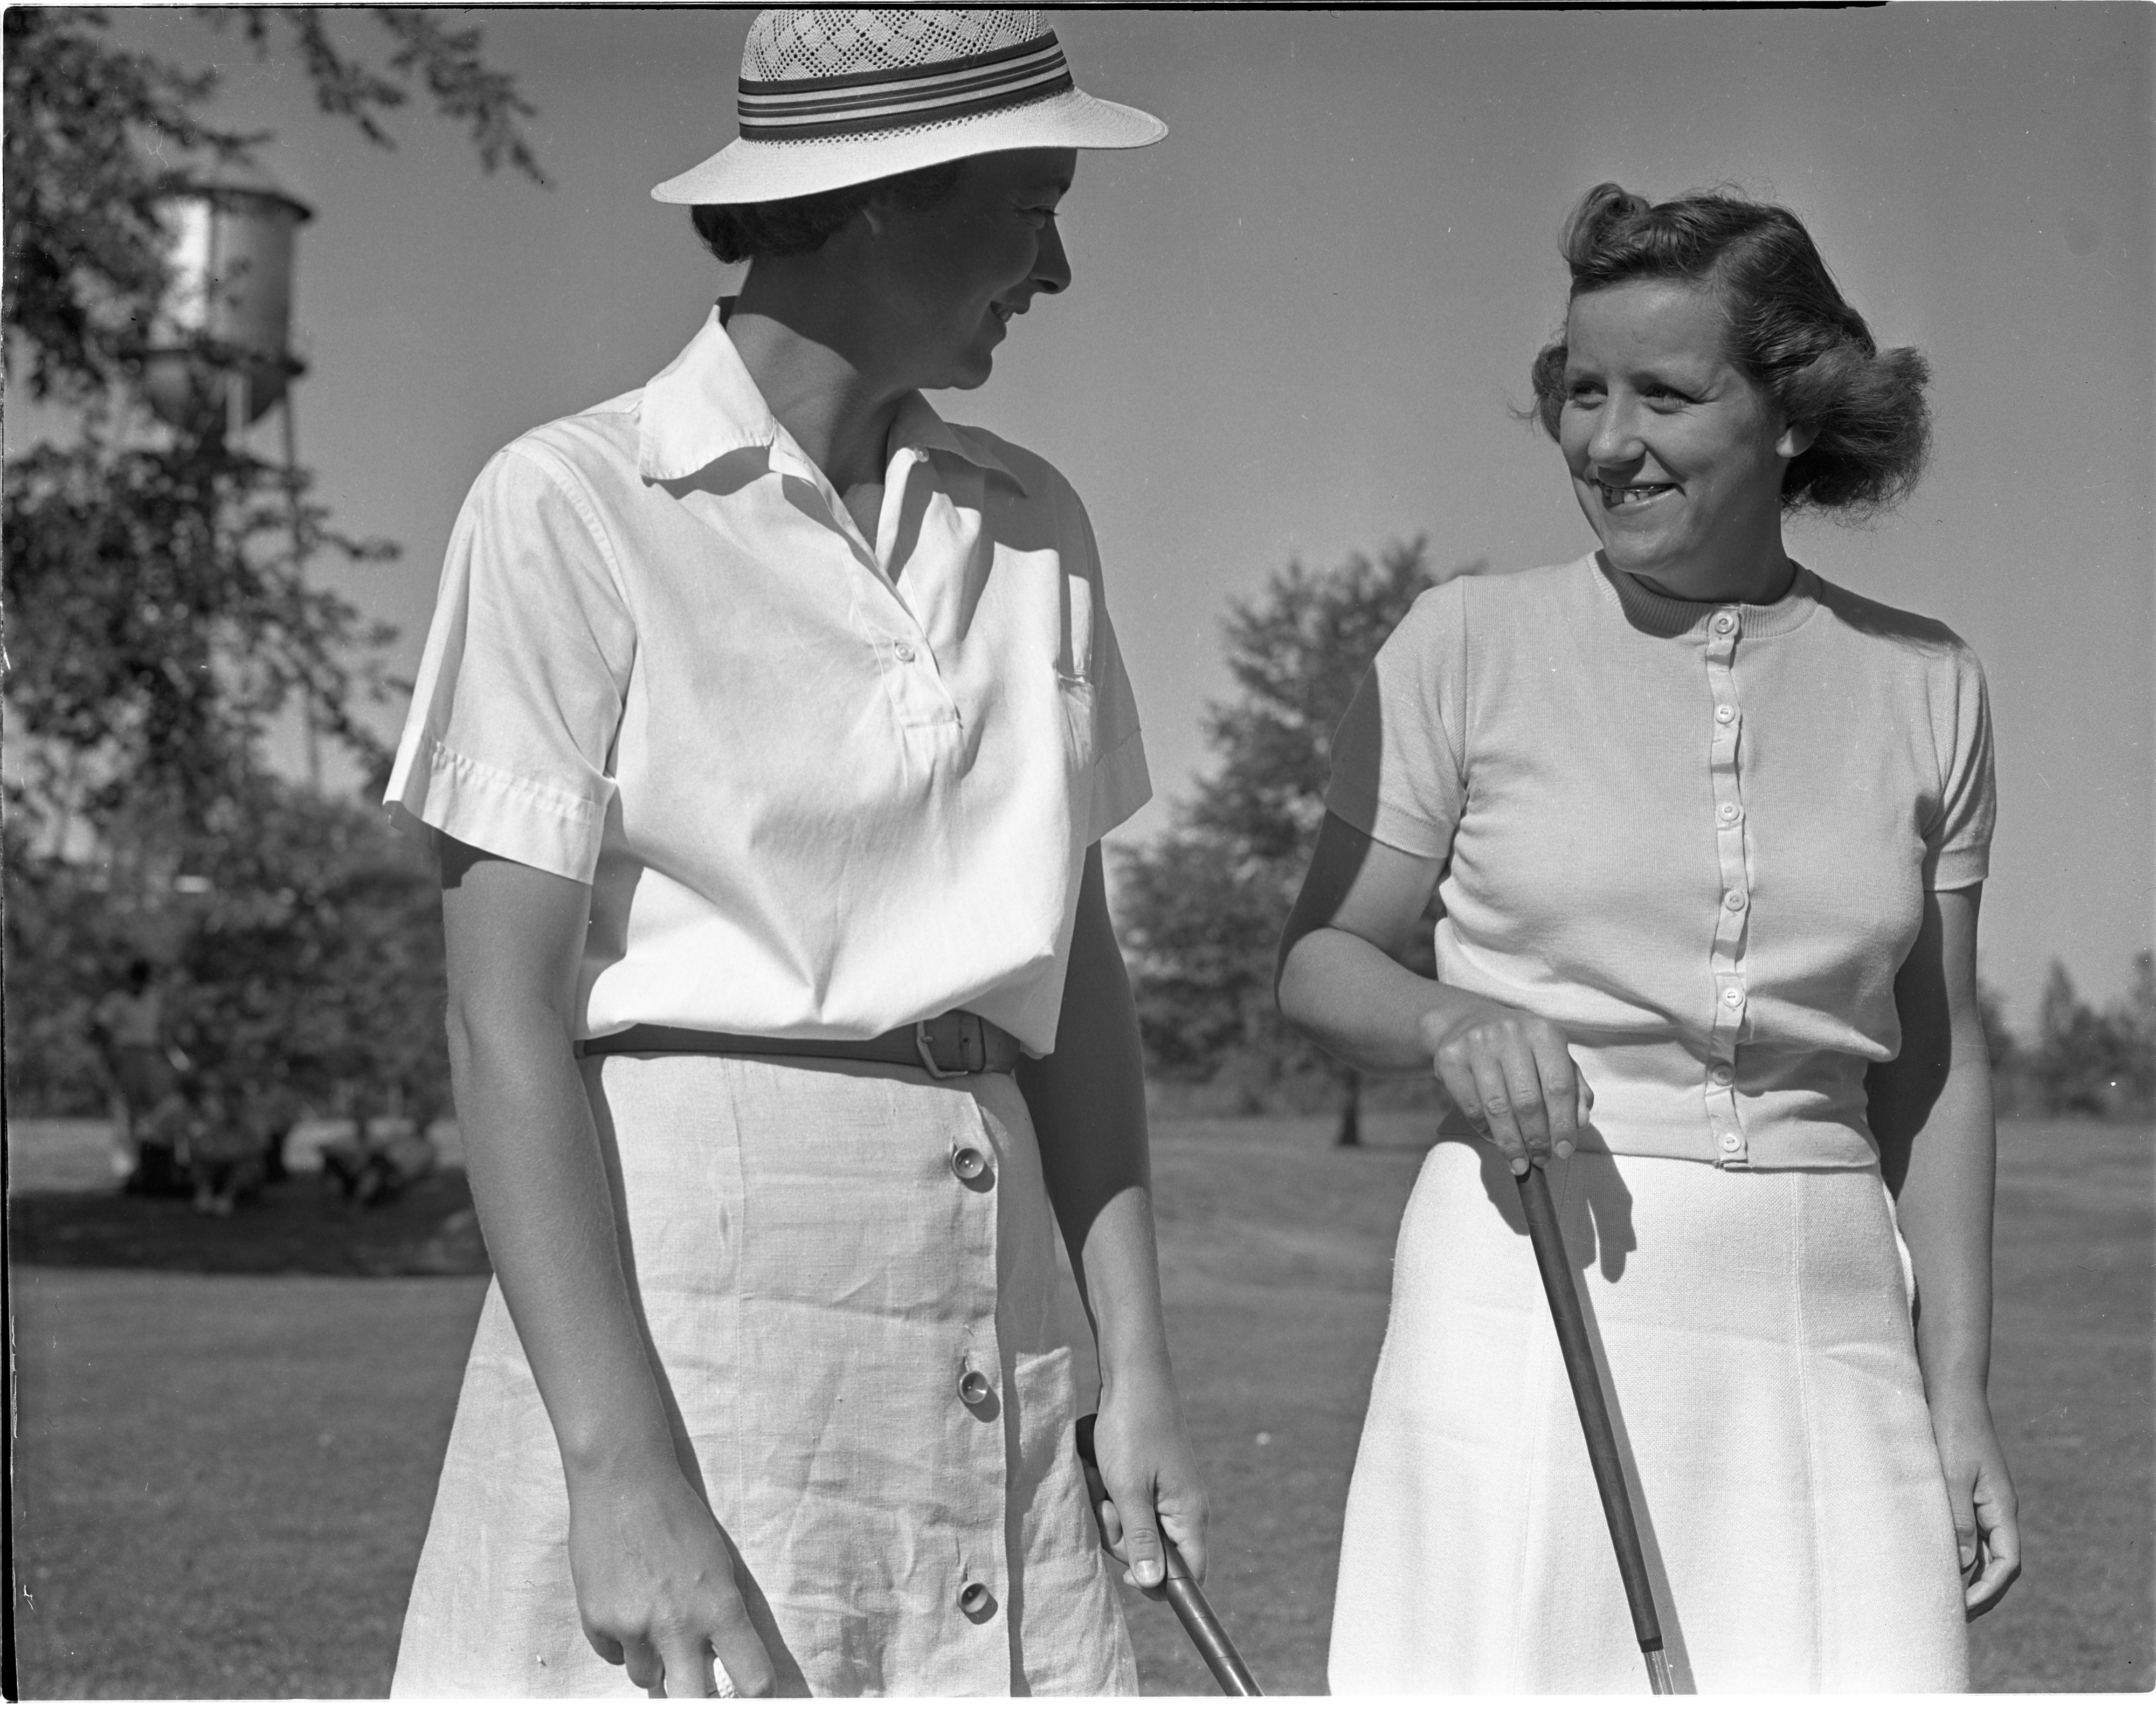 Jean Kyer & Betty Bonisteel At The Barton Hills Club Championship, August 1939 image